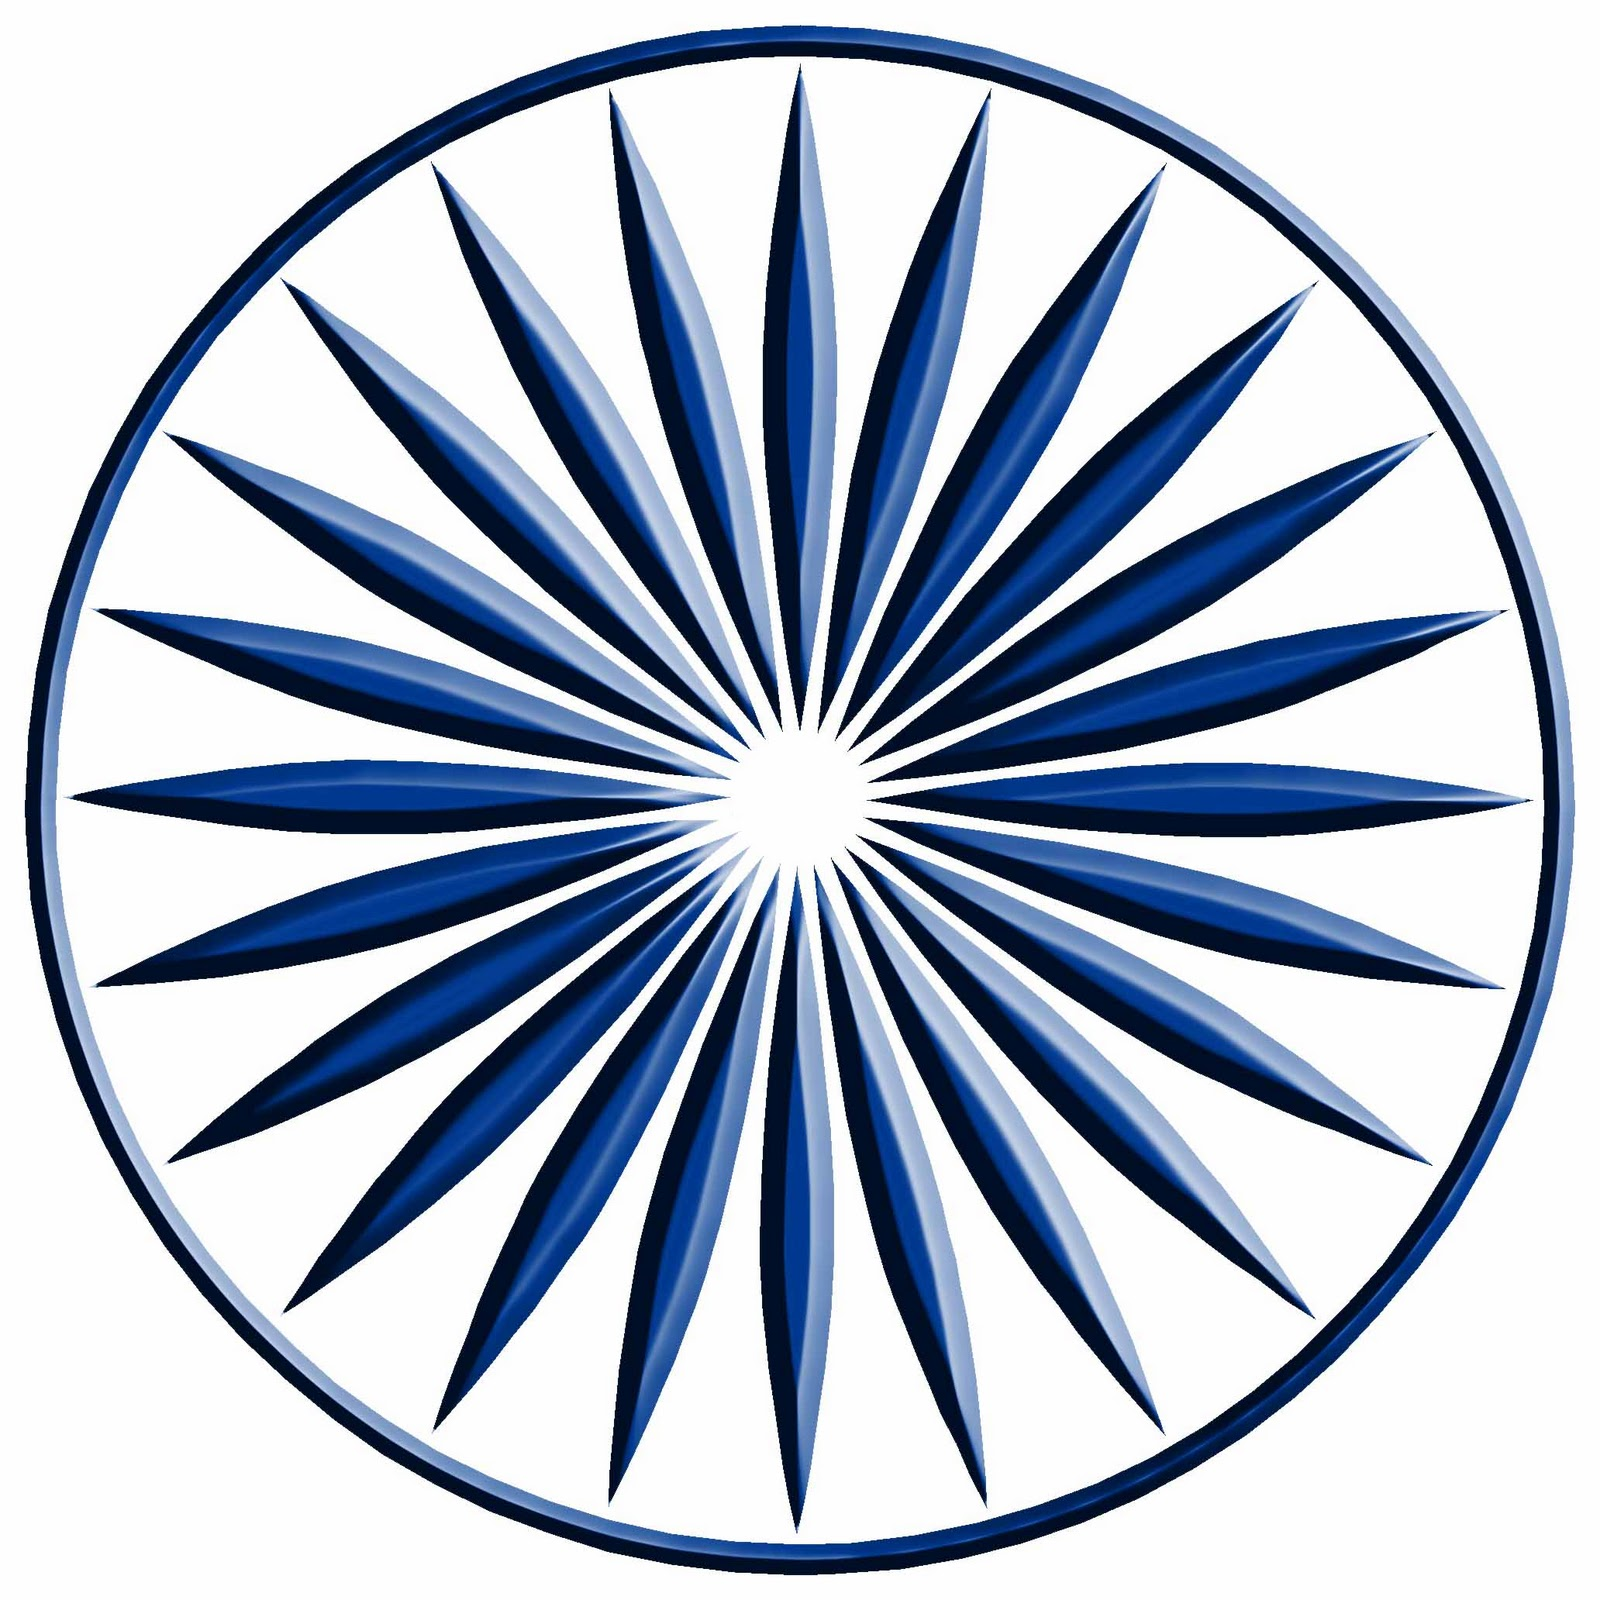 Hd Ashoka Chakra Transparent Background